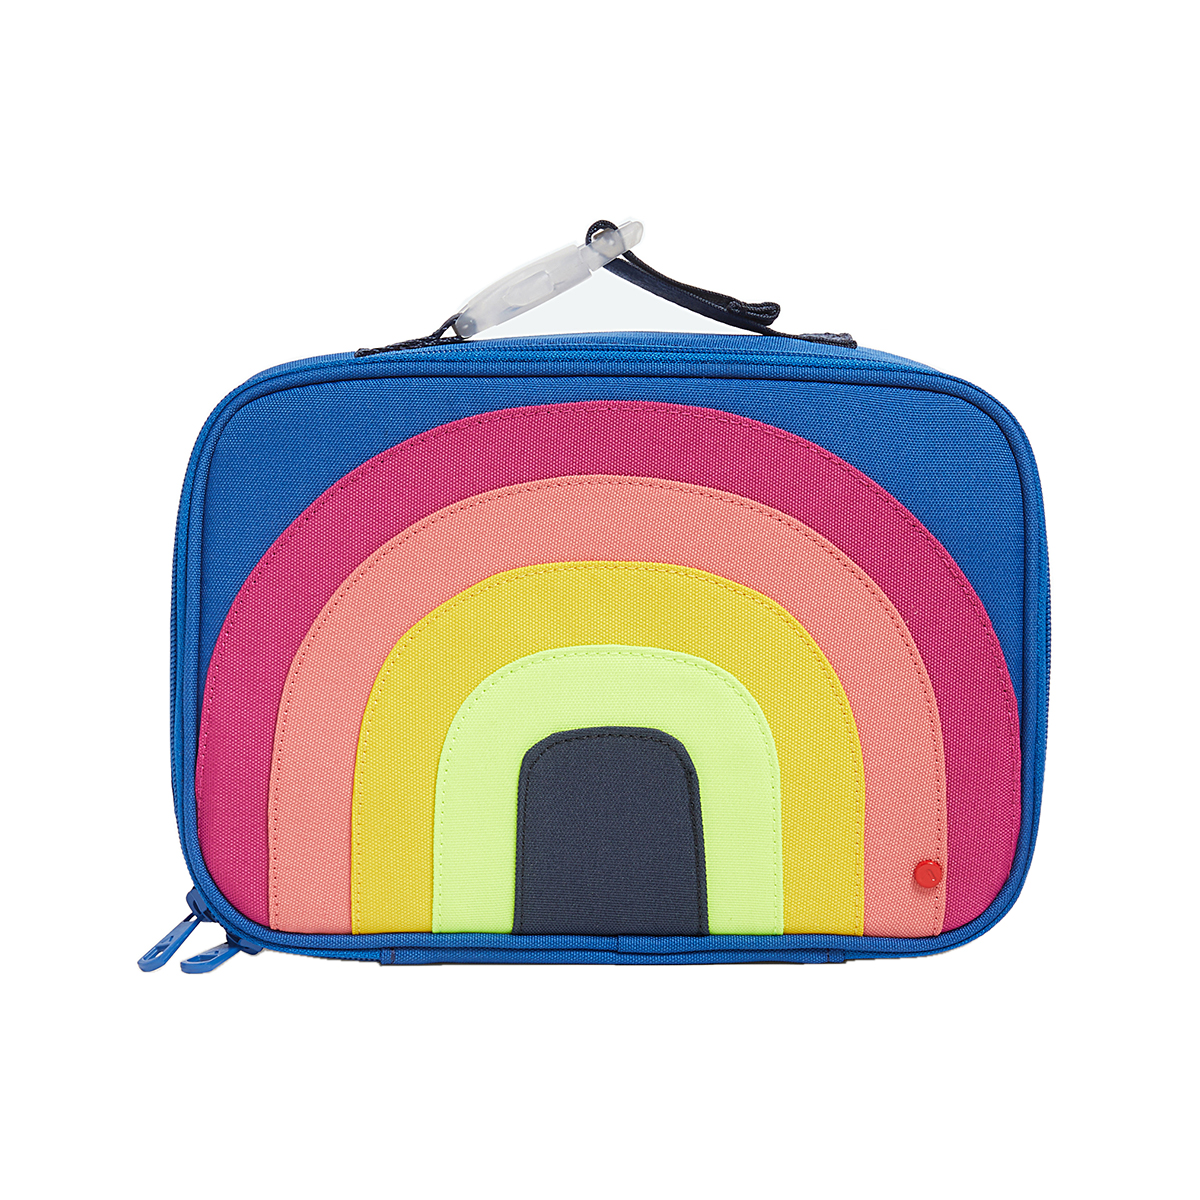 State Bags Rodgers Lunch Box in Rainbow